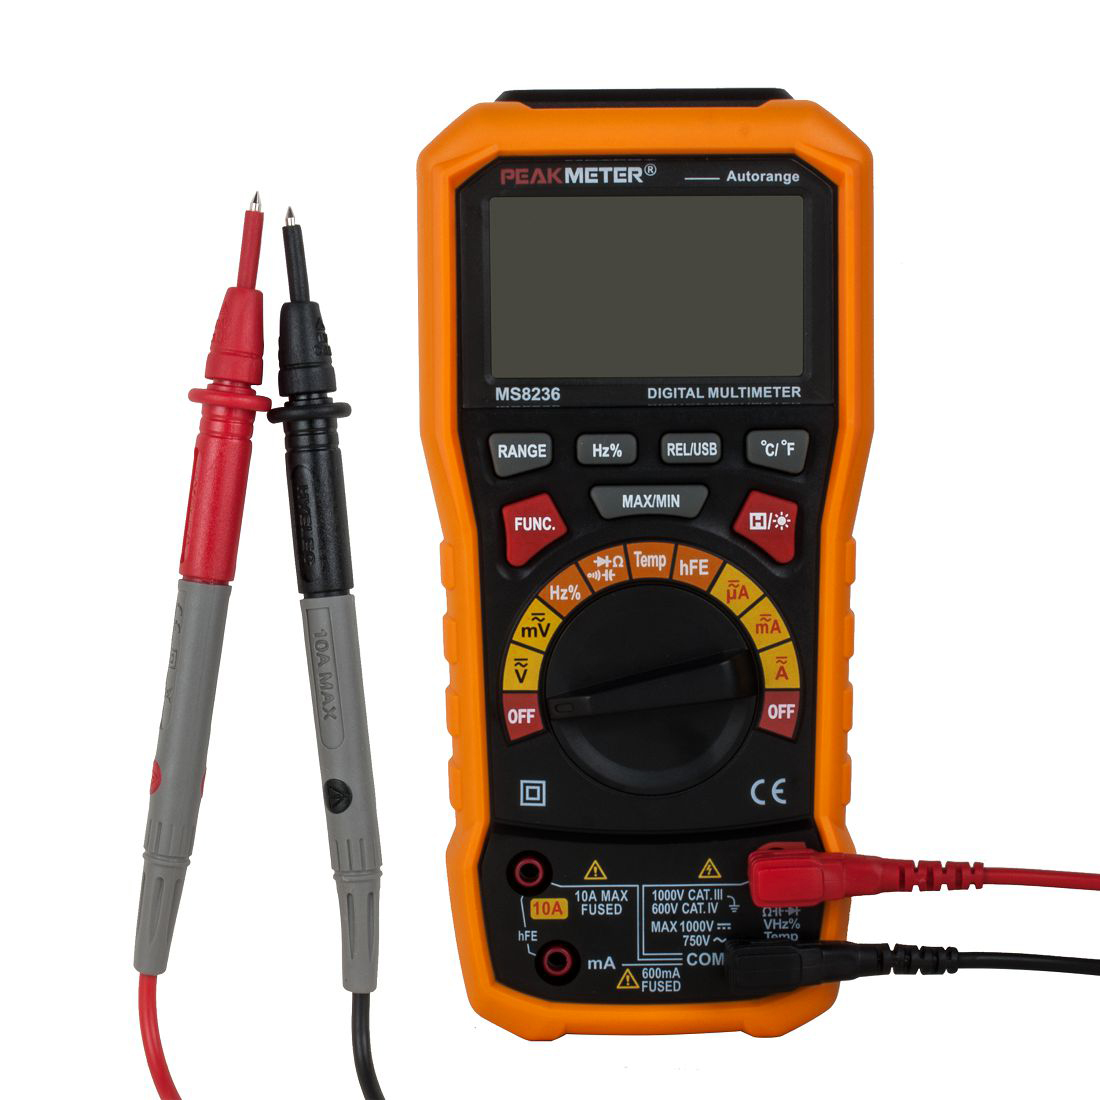 UXCELL Digital Multimeter Ac/ Voltage Current Resistance Capacitance Frequency Temperature Tester Meter 600mv/6v/60v/600v/1000v my68 handheld auto range digital multimeter dmm w capacitance frequency